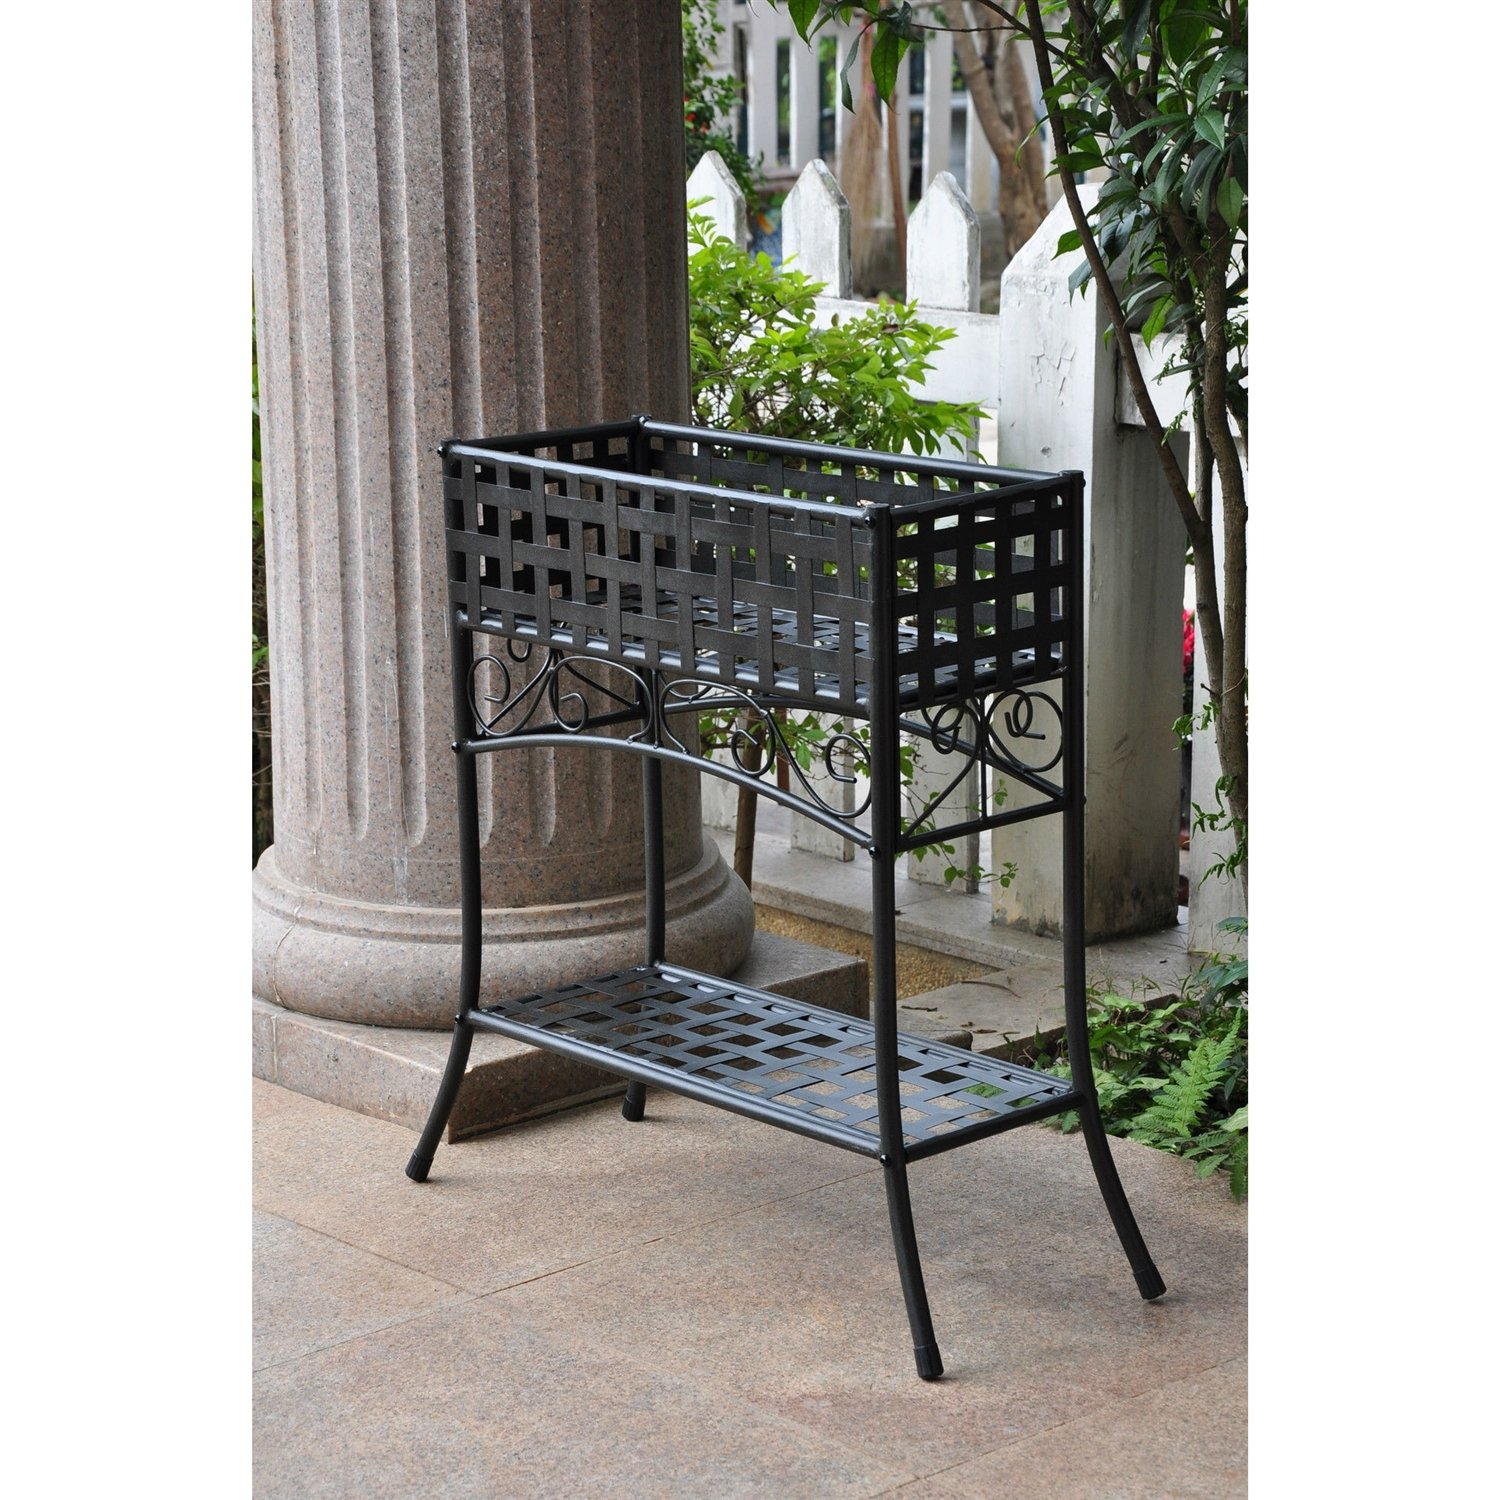 This Elevated Rectangular Metal Planter Stand In Black